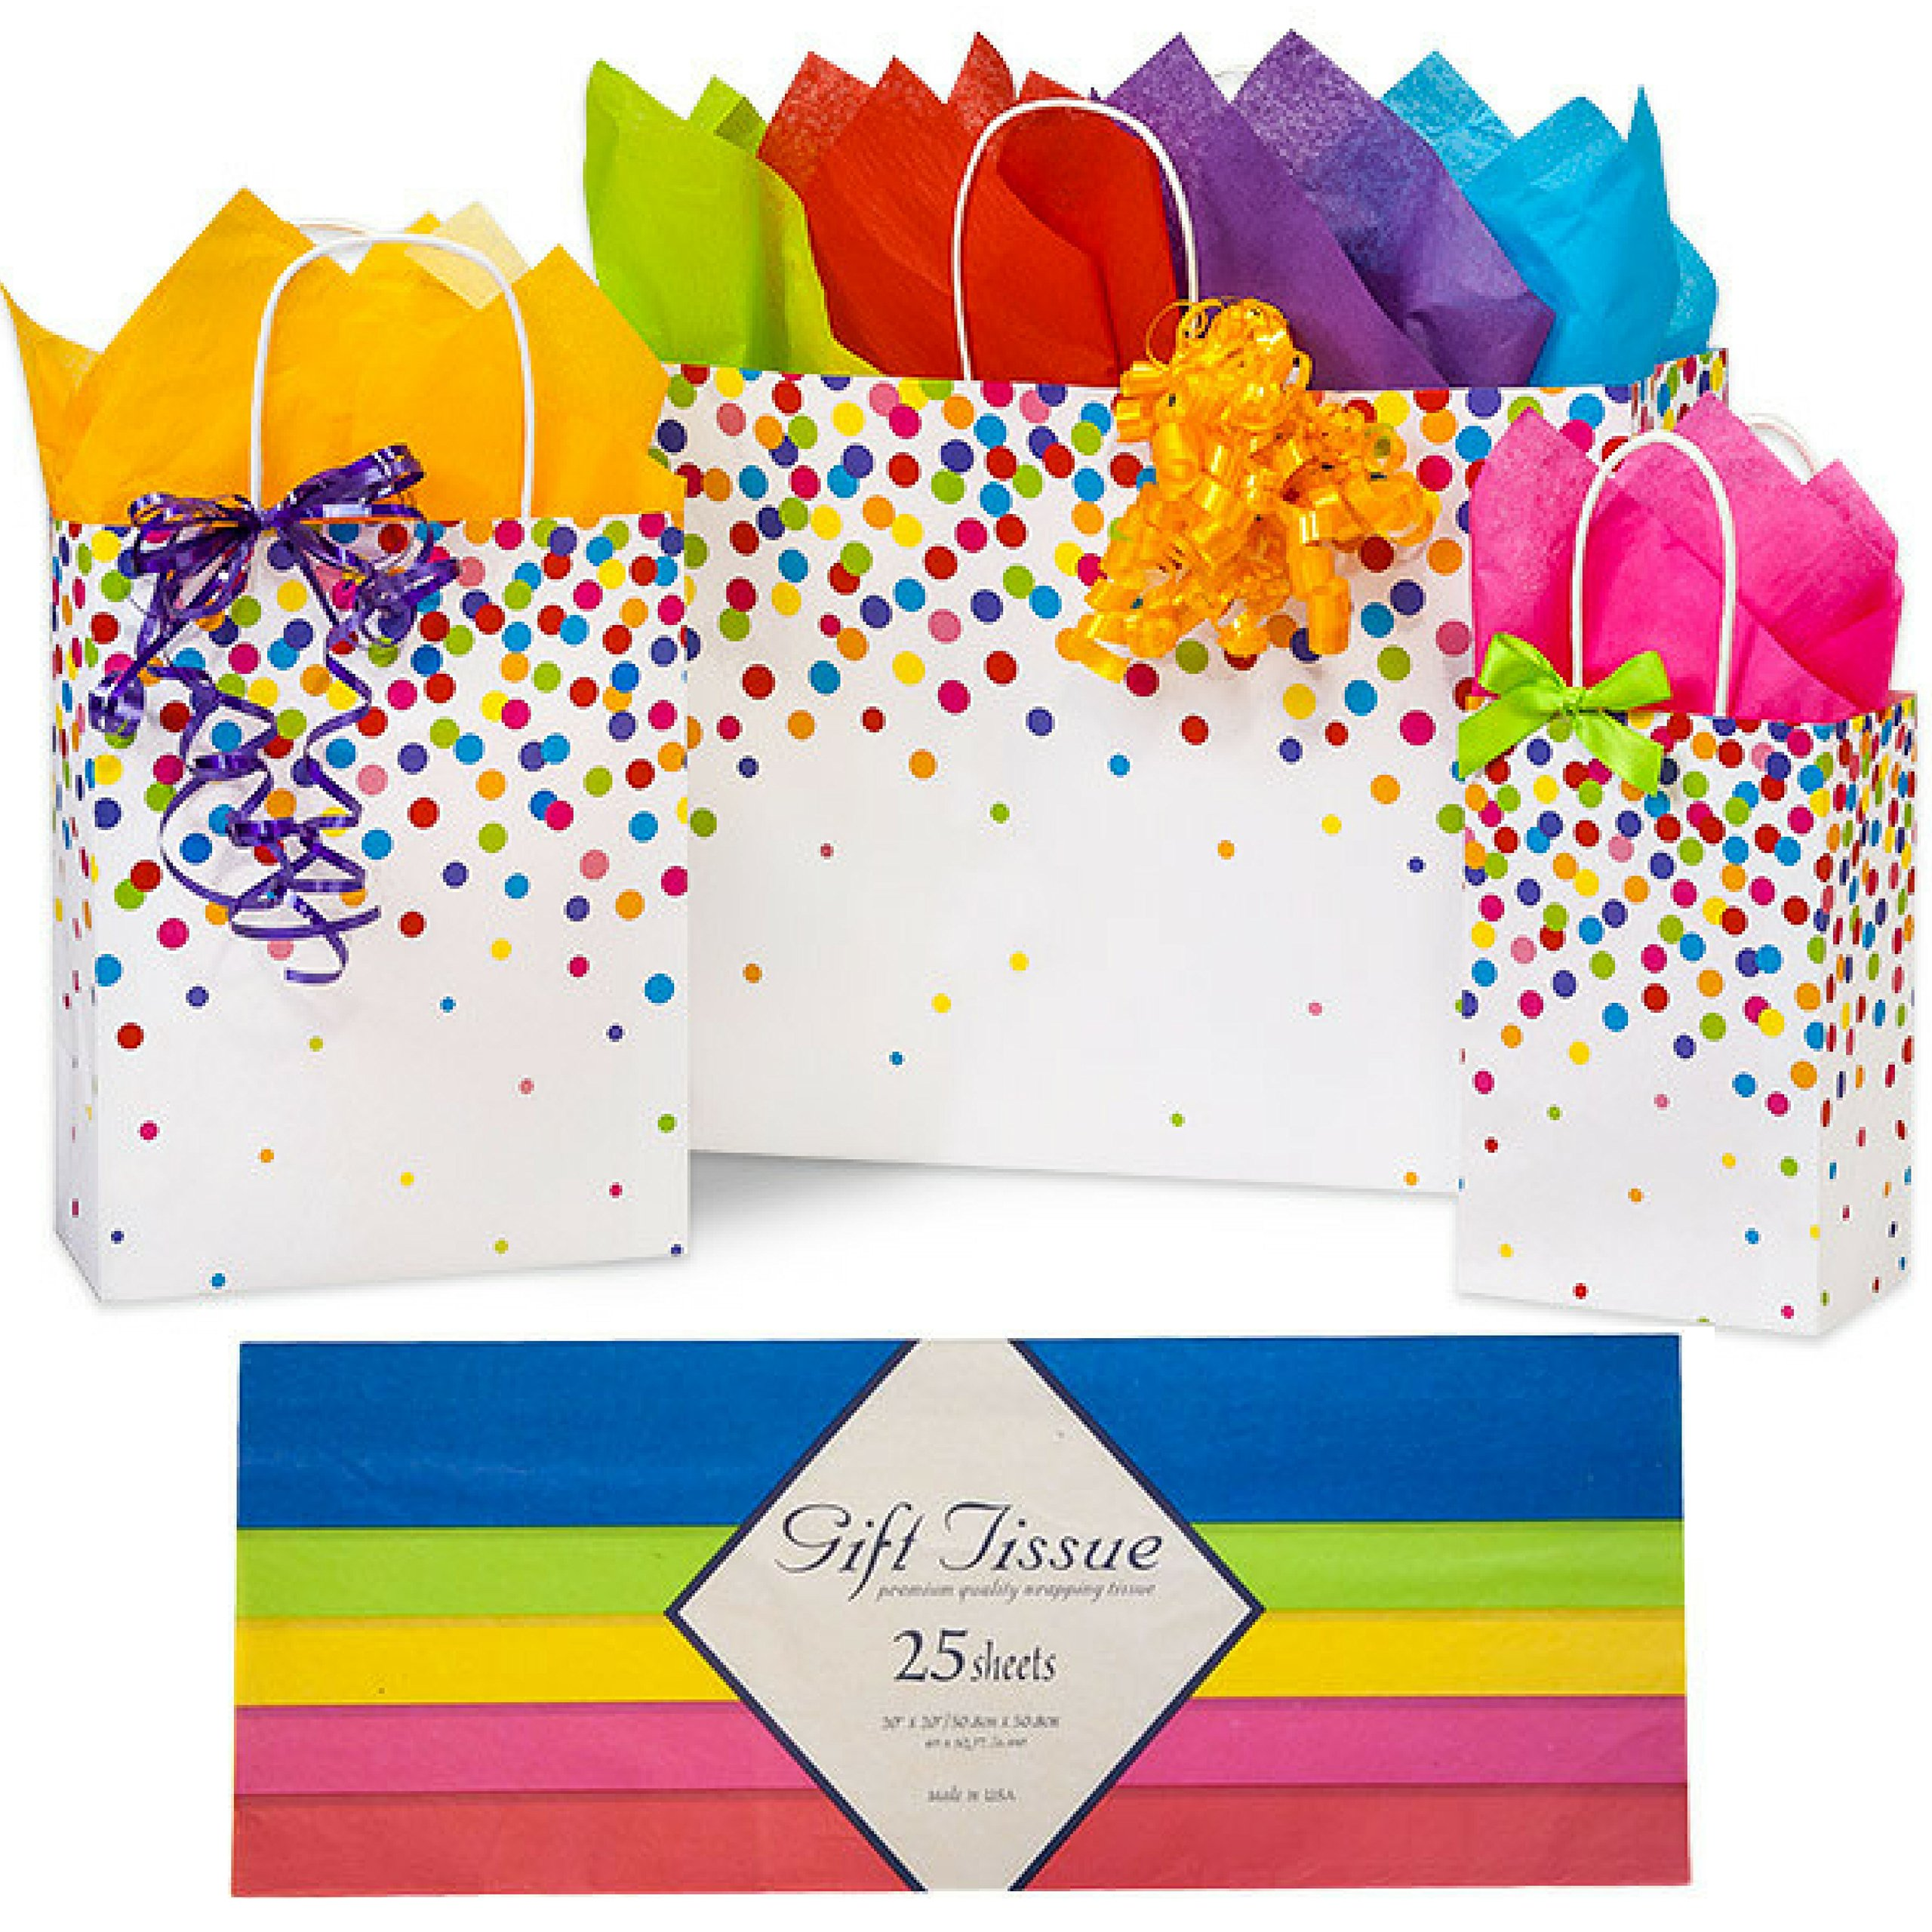 Gift Bags with Tissue Paper and Handles, for Birthday Gifts, Small Medium Large Gift Bag 3 Assorted Sizes Rainbow Confetti by Bags N More